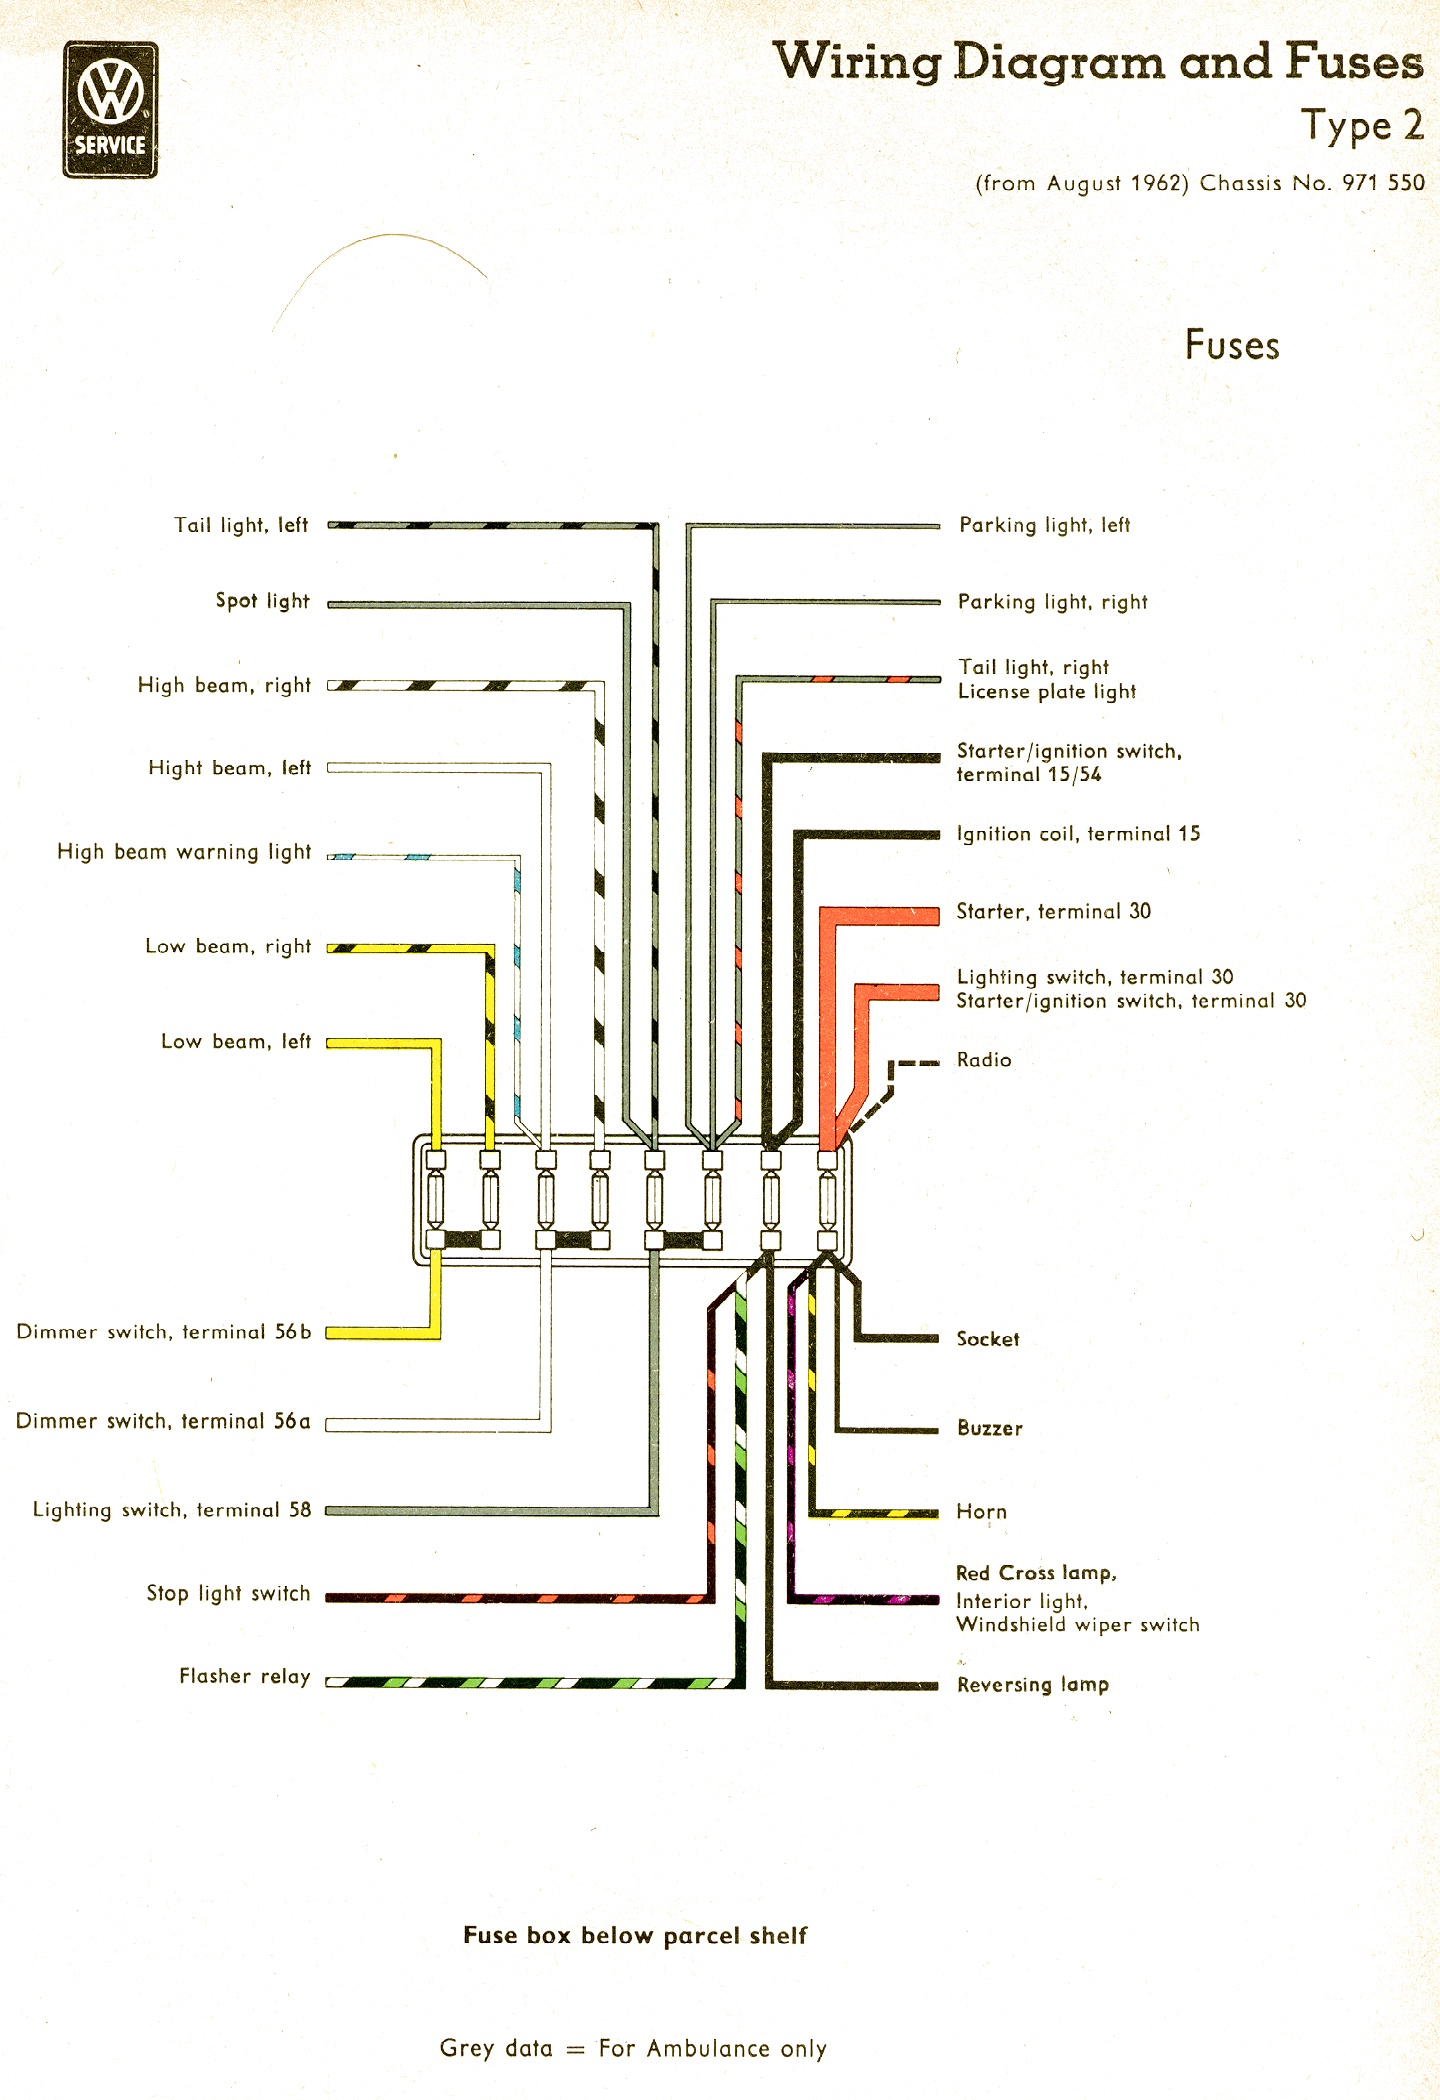 1972 Vw Bus Ignintion Switch Wiring - Wiring Diagram Img